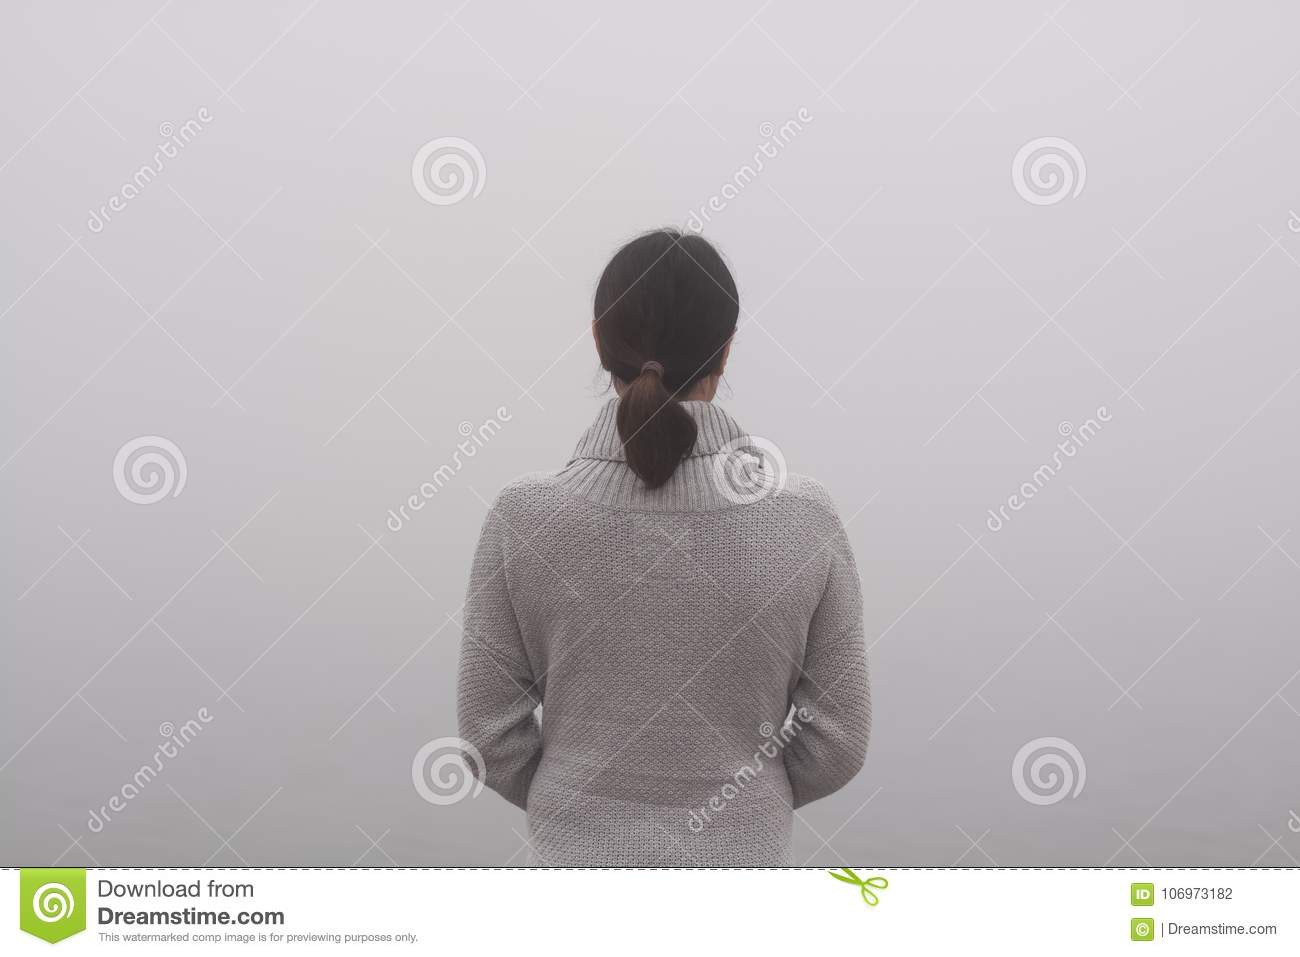 Young woman is standing by the water on a foggy day